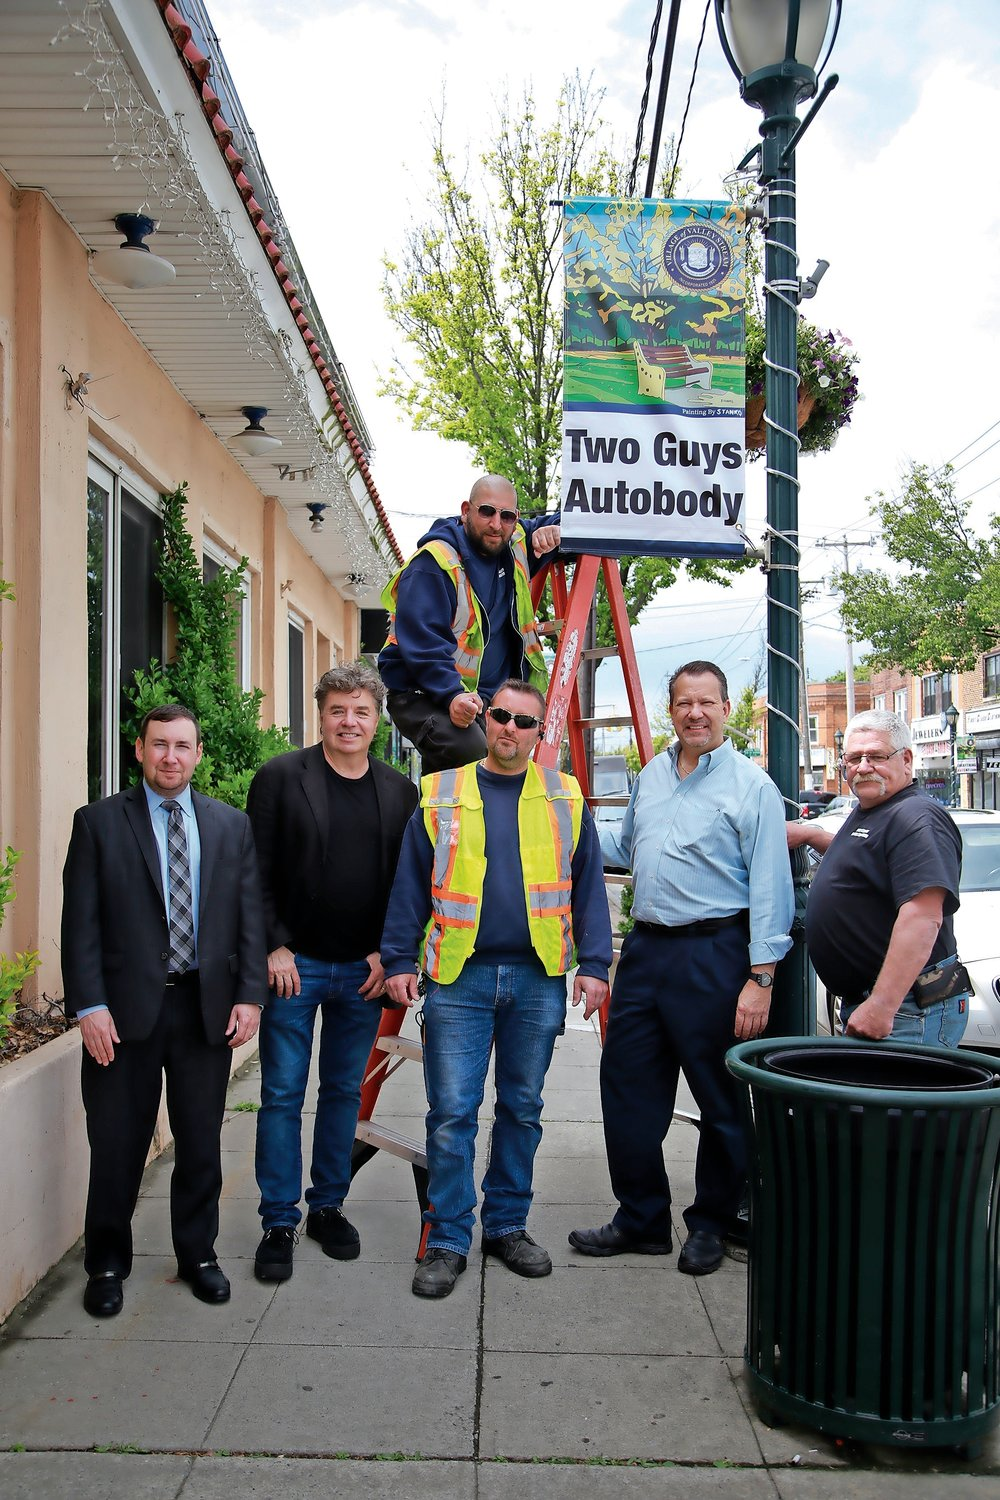 Chamber President Dominick Minerva, from left, artist Michael Stanko, Tony Ragusano, Gerald Scarangella, Mayor Ed Fare and Brian Howley hung the banners on Rockaway Avenue on May 23.